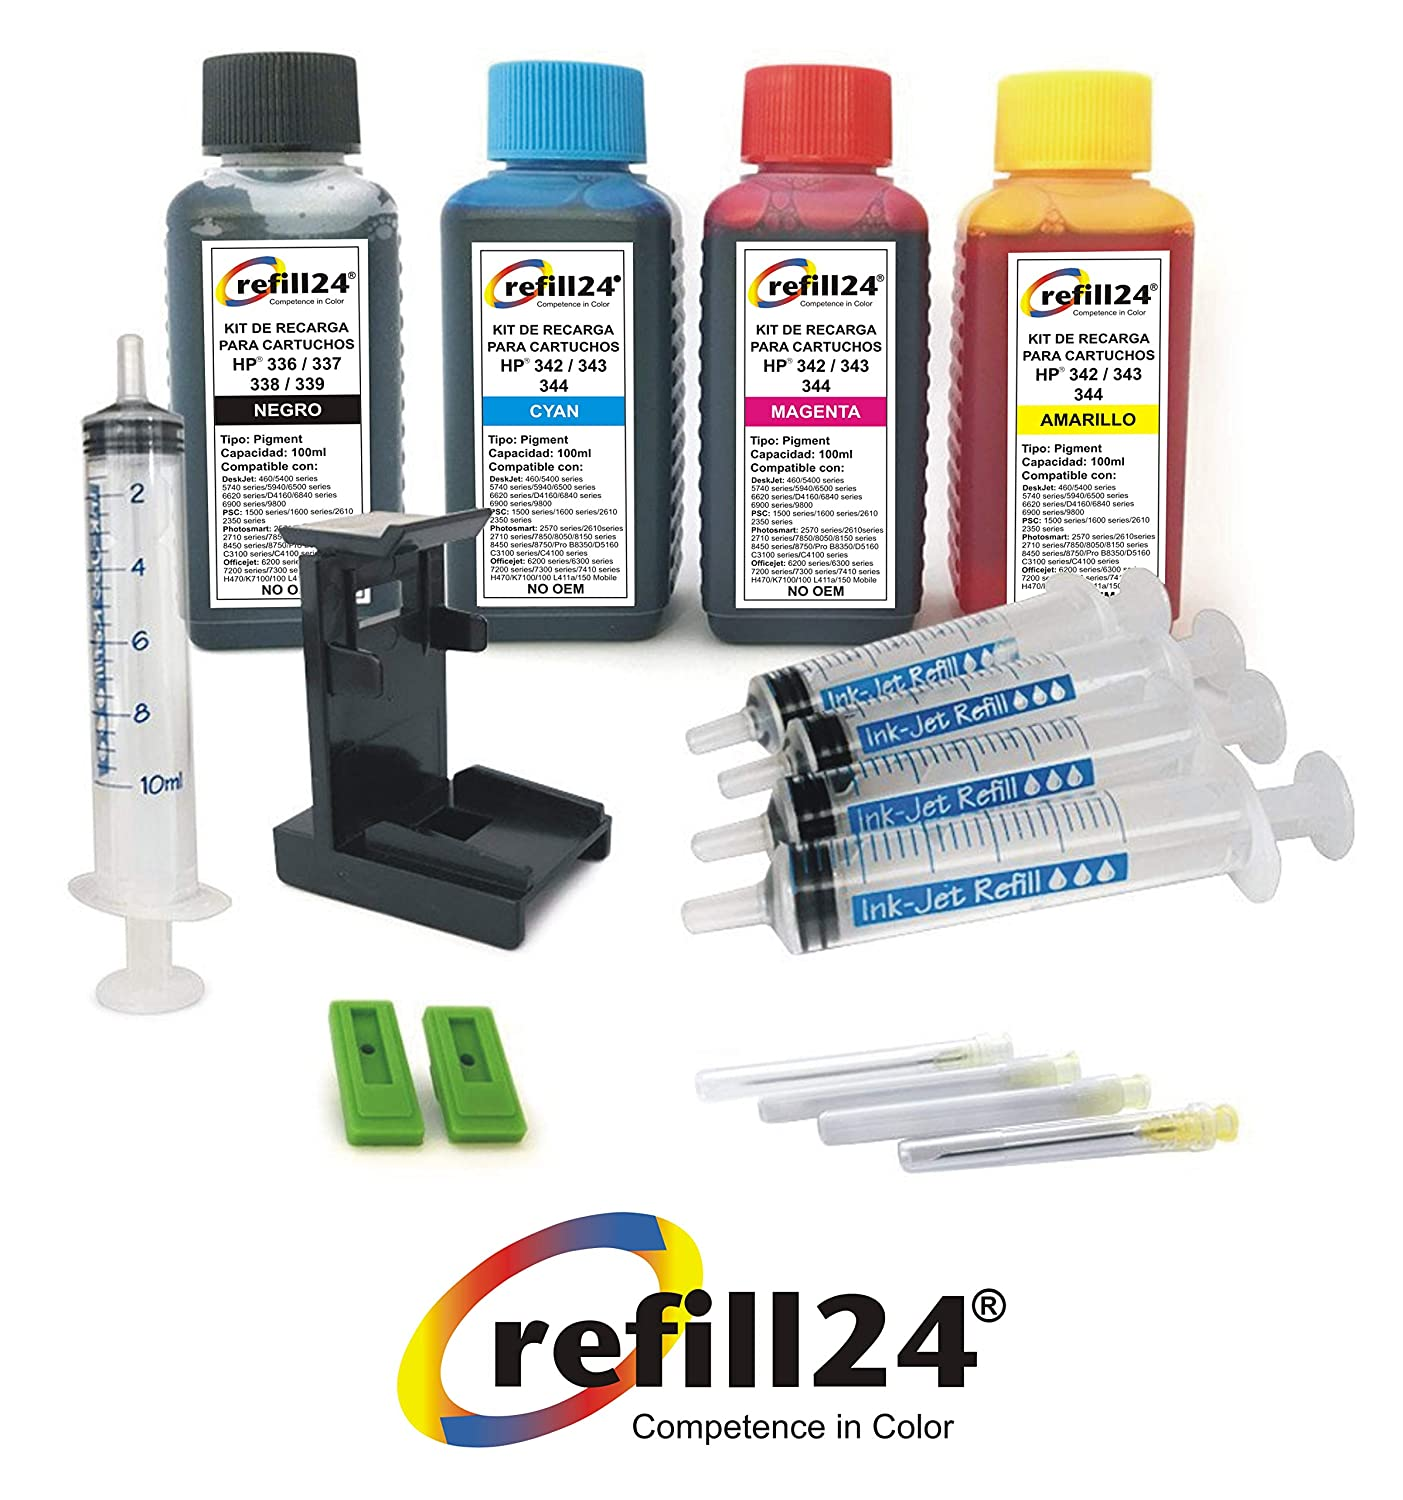 Kit de Recarga para Cartuchos de Tinta HP 338, 343 Negro y Color ...